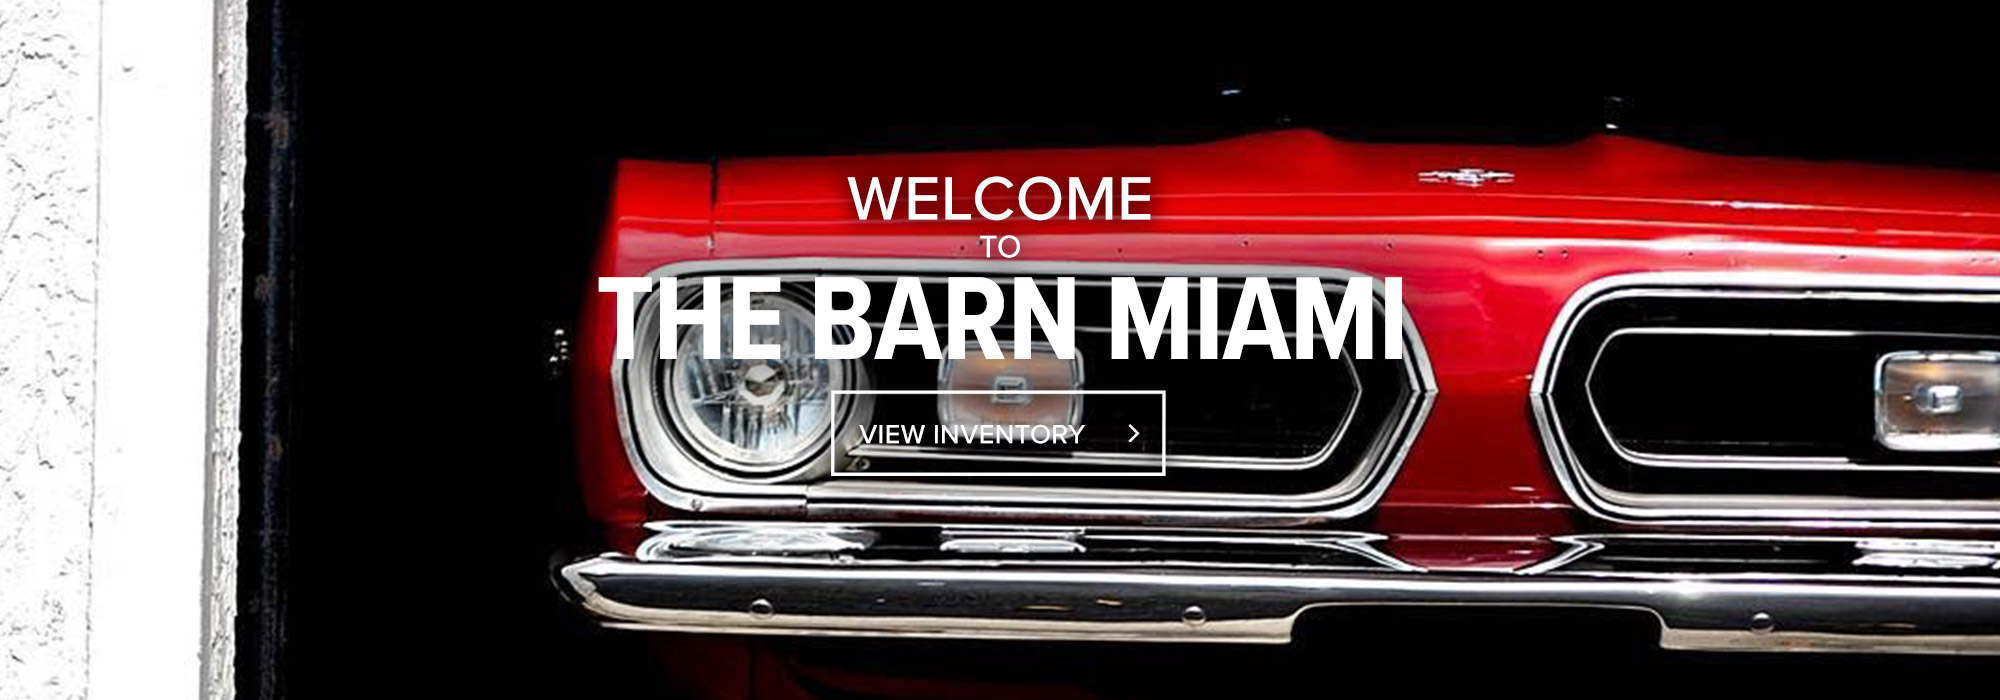 The Barn Miami